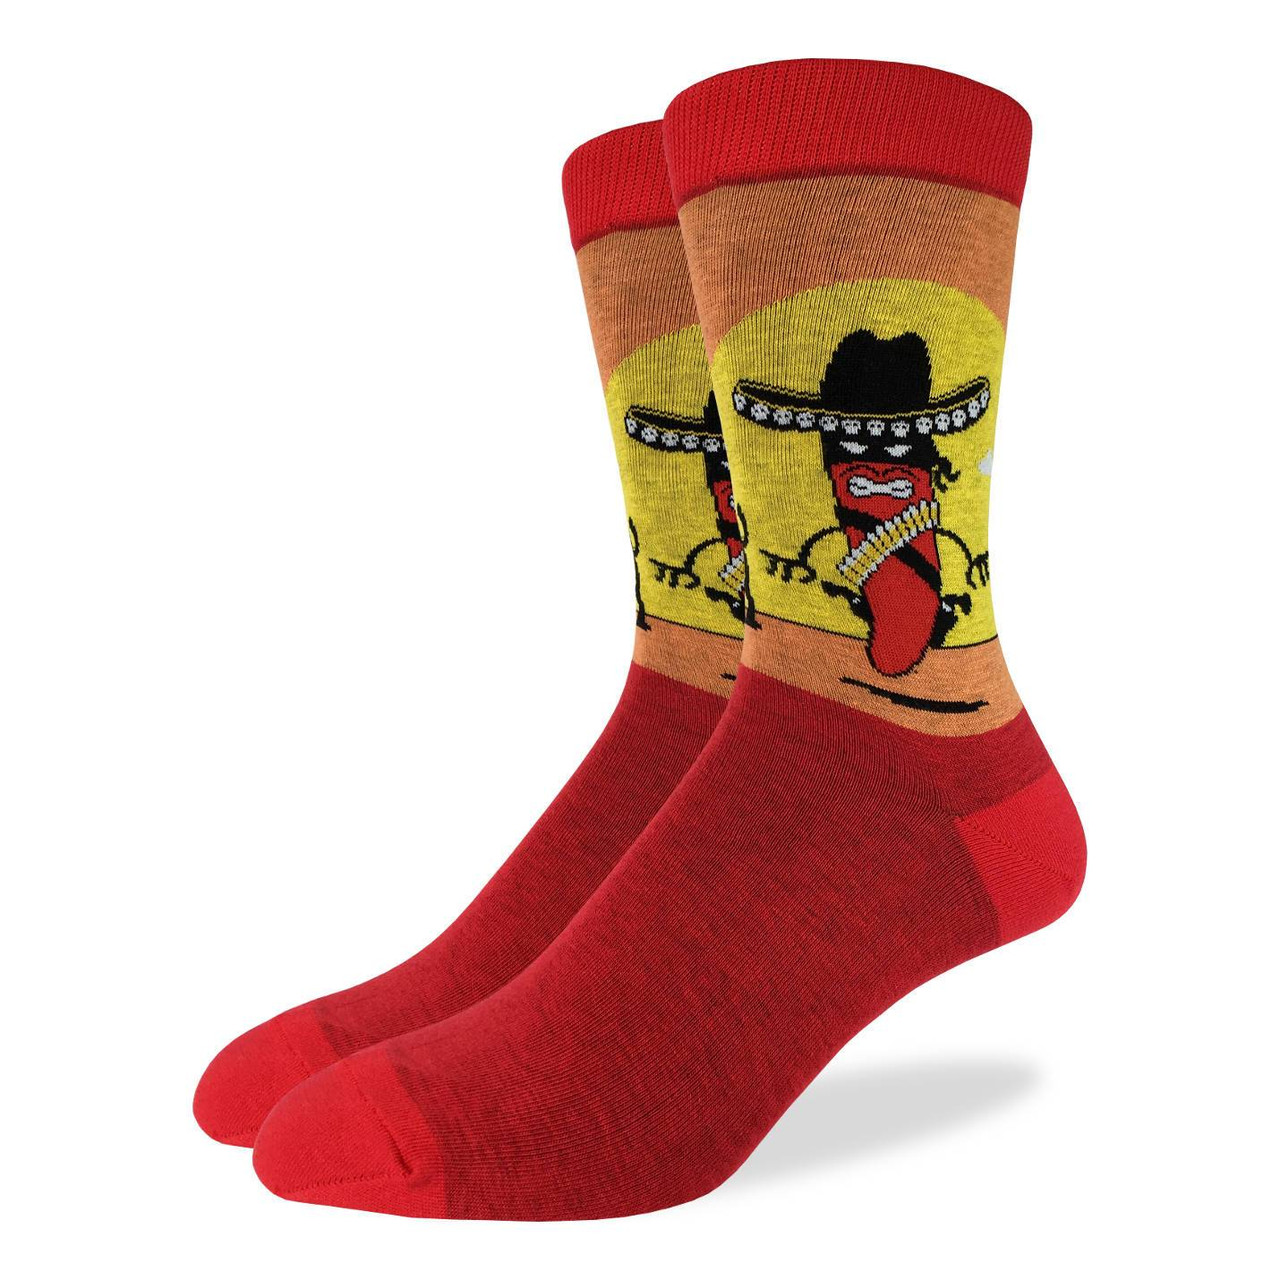 Adult Shoe Size 5-9 Good Luck Sock Womens Flying Insects Socks Red